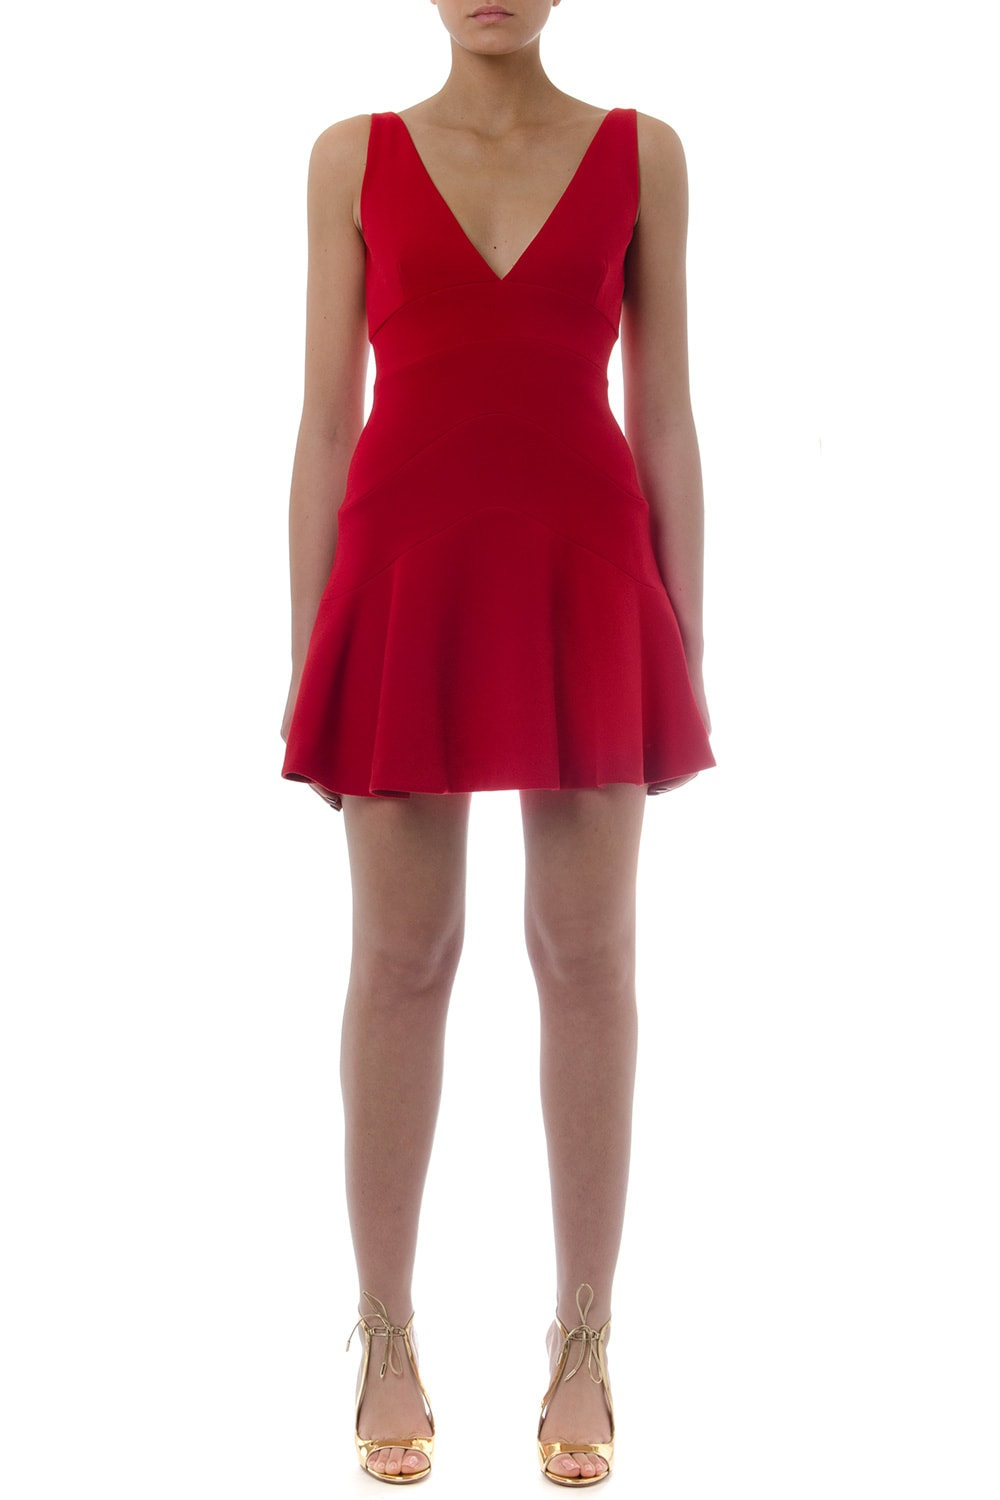 Dsquared2 Red Peplum Mini Dress